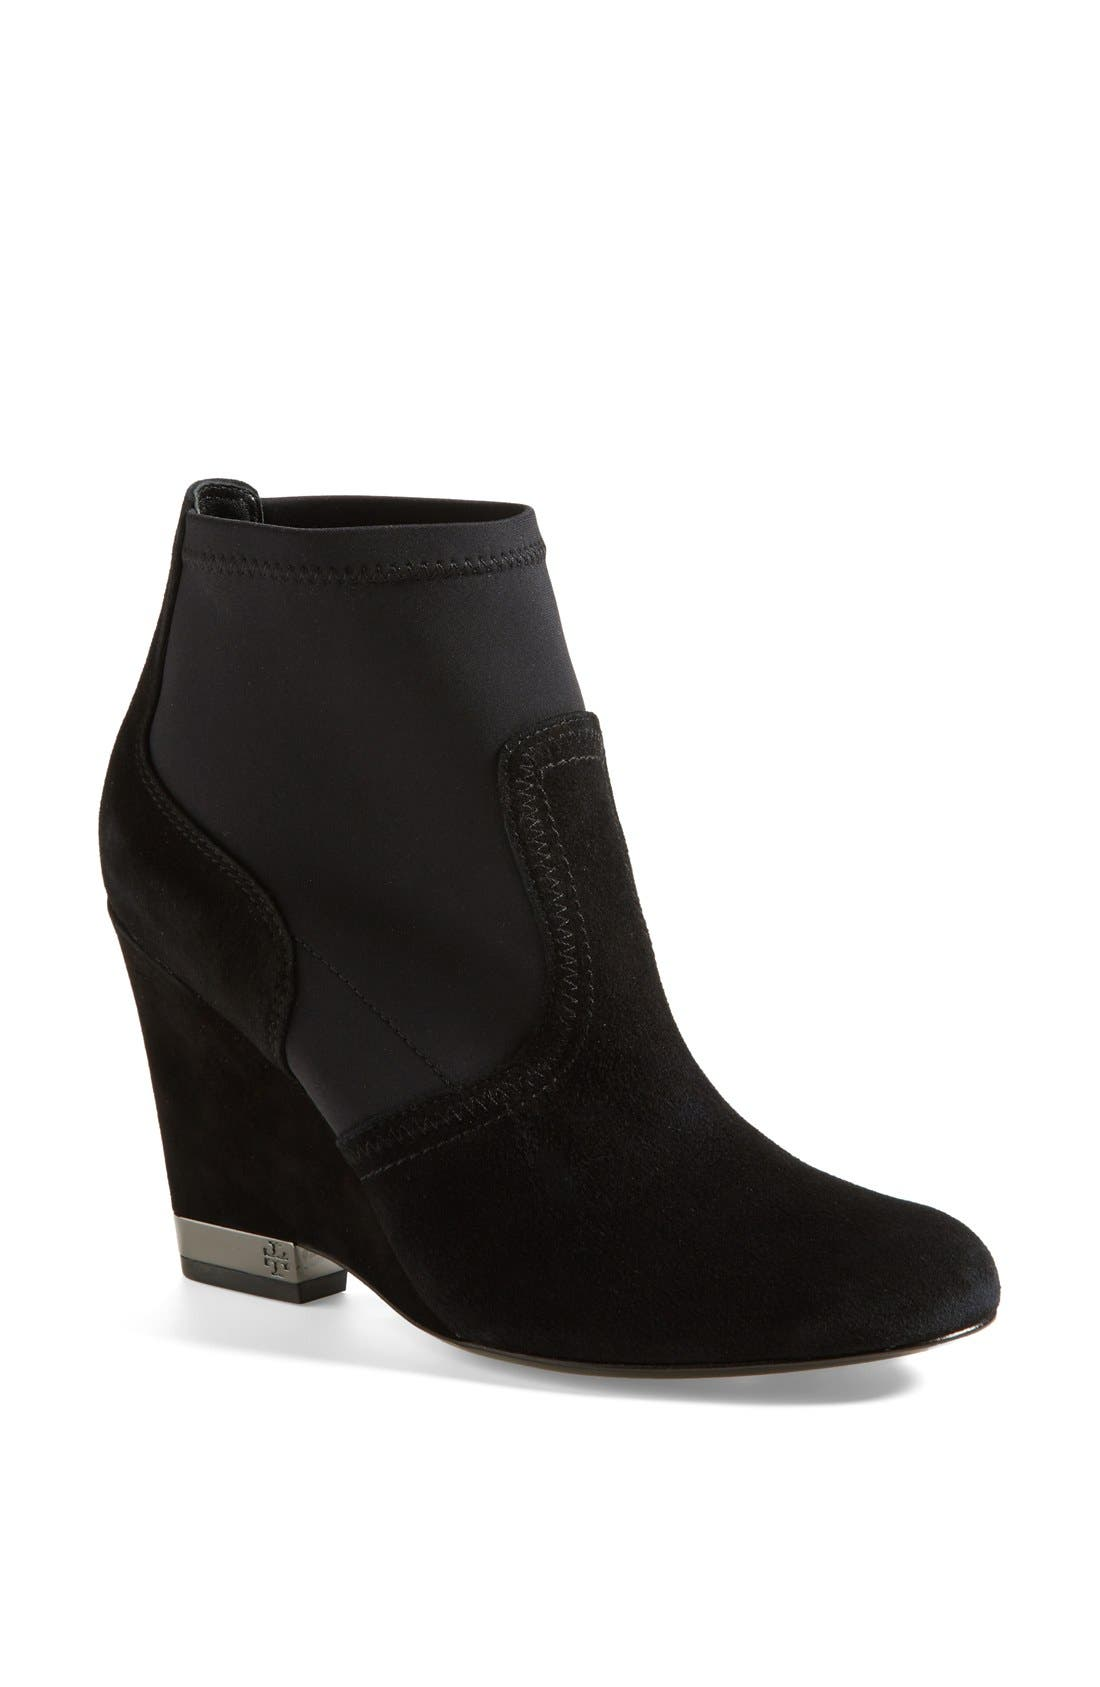 Main Image - Tory Burch 'Brenda' Demi Wedge Boot